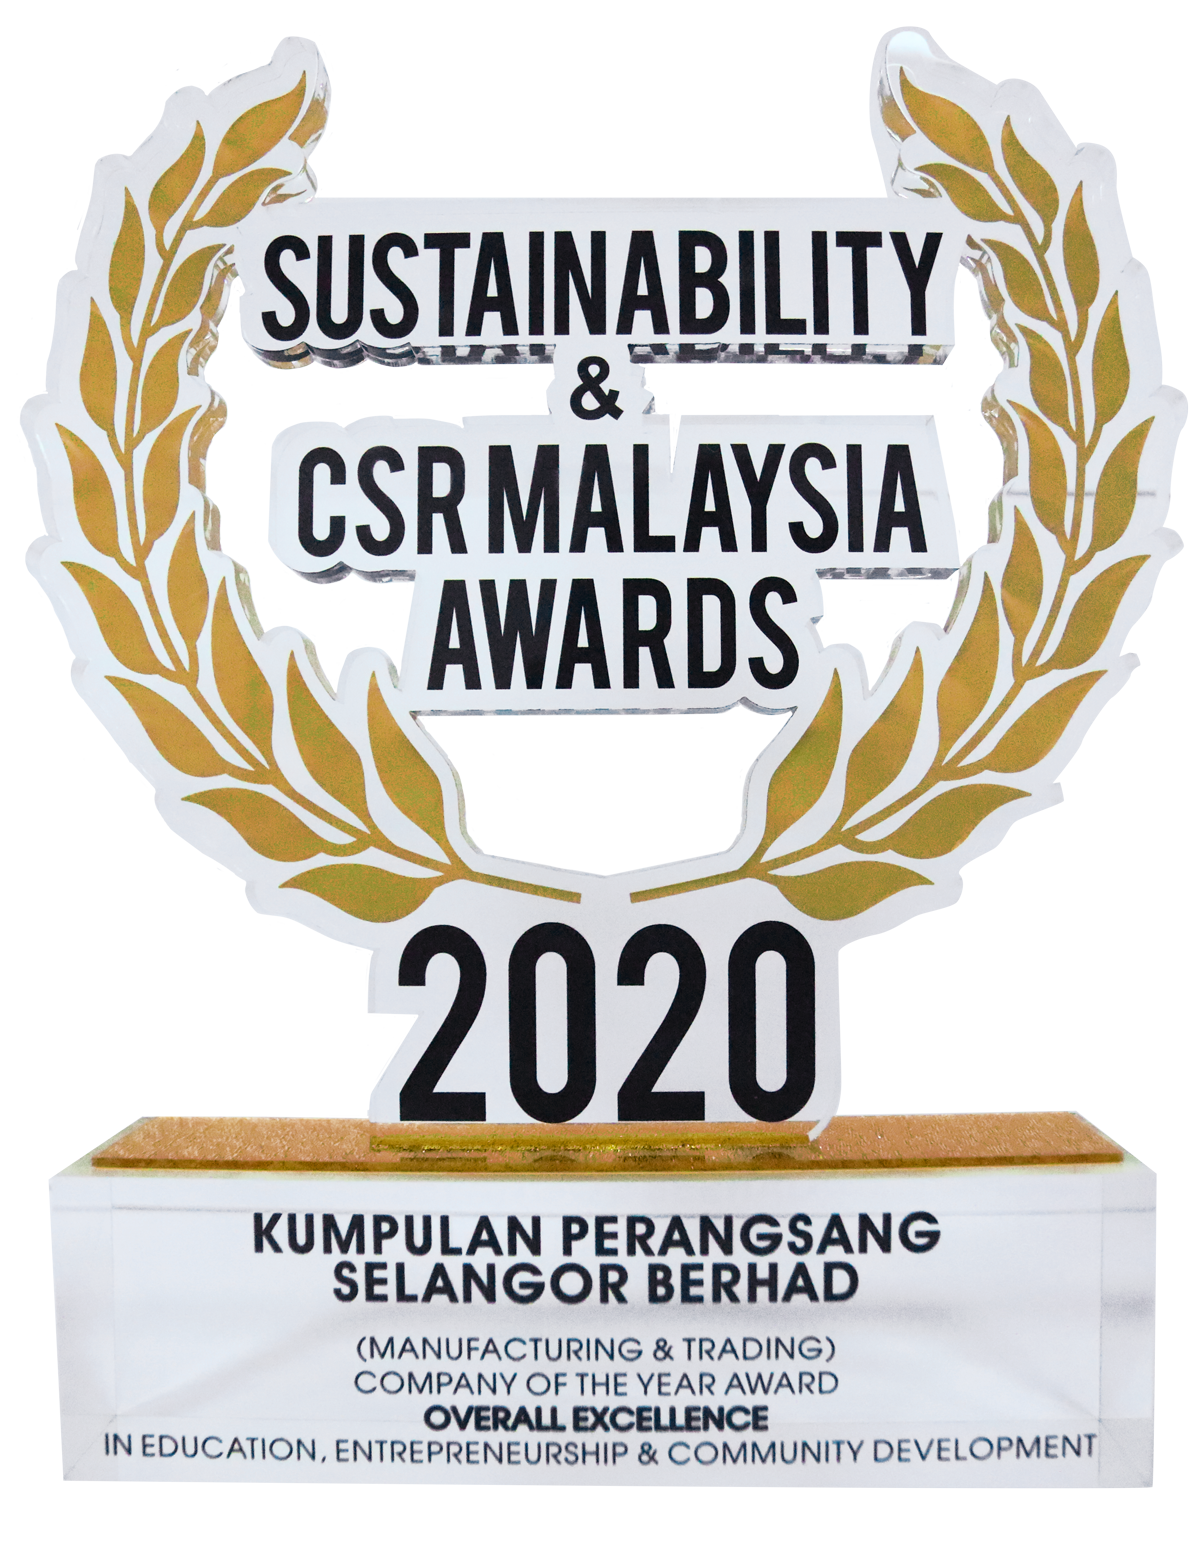 SUSTAINABILITY & CSR MALAYSIA AWARD 2020 COMPANY OF THE YEAR